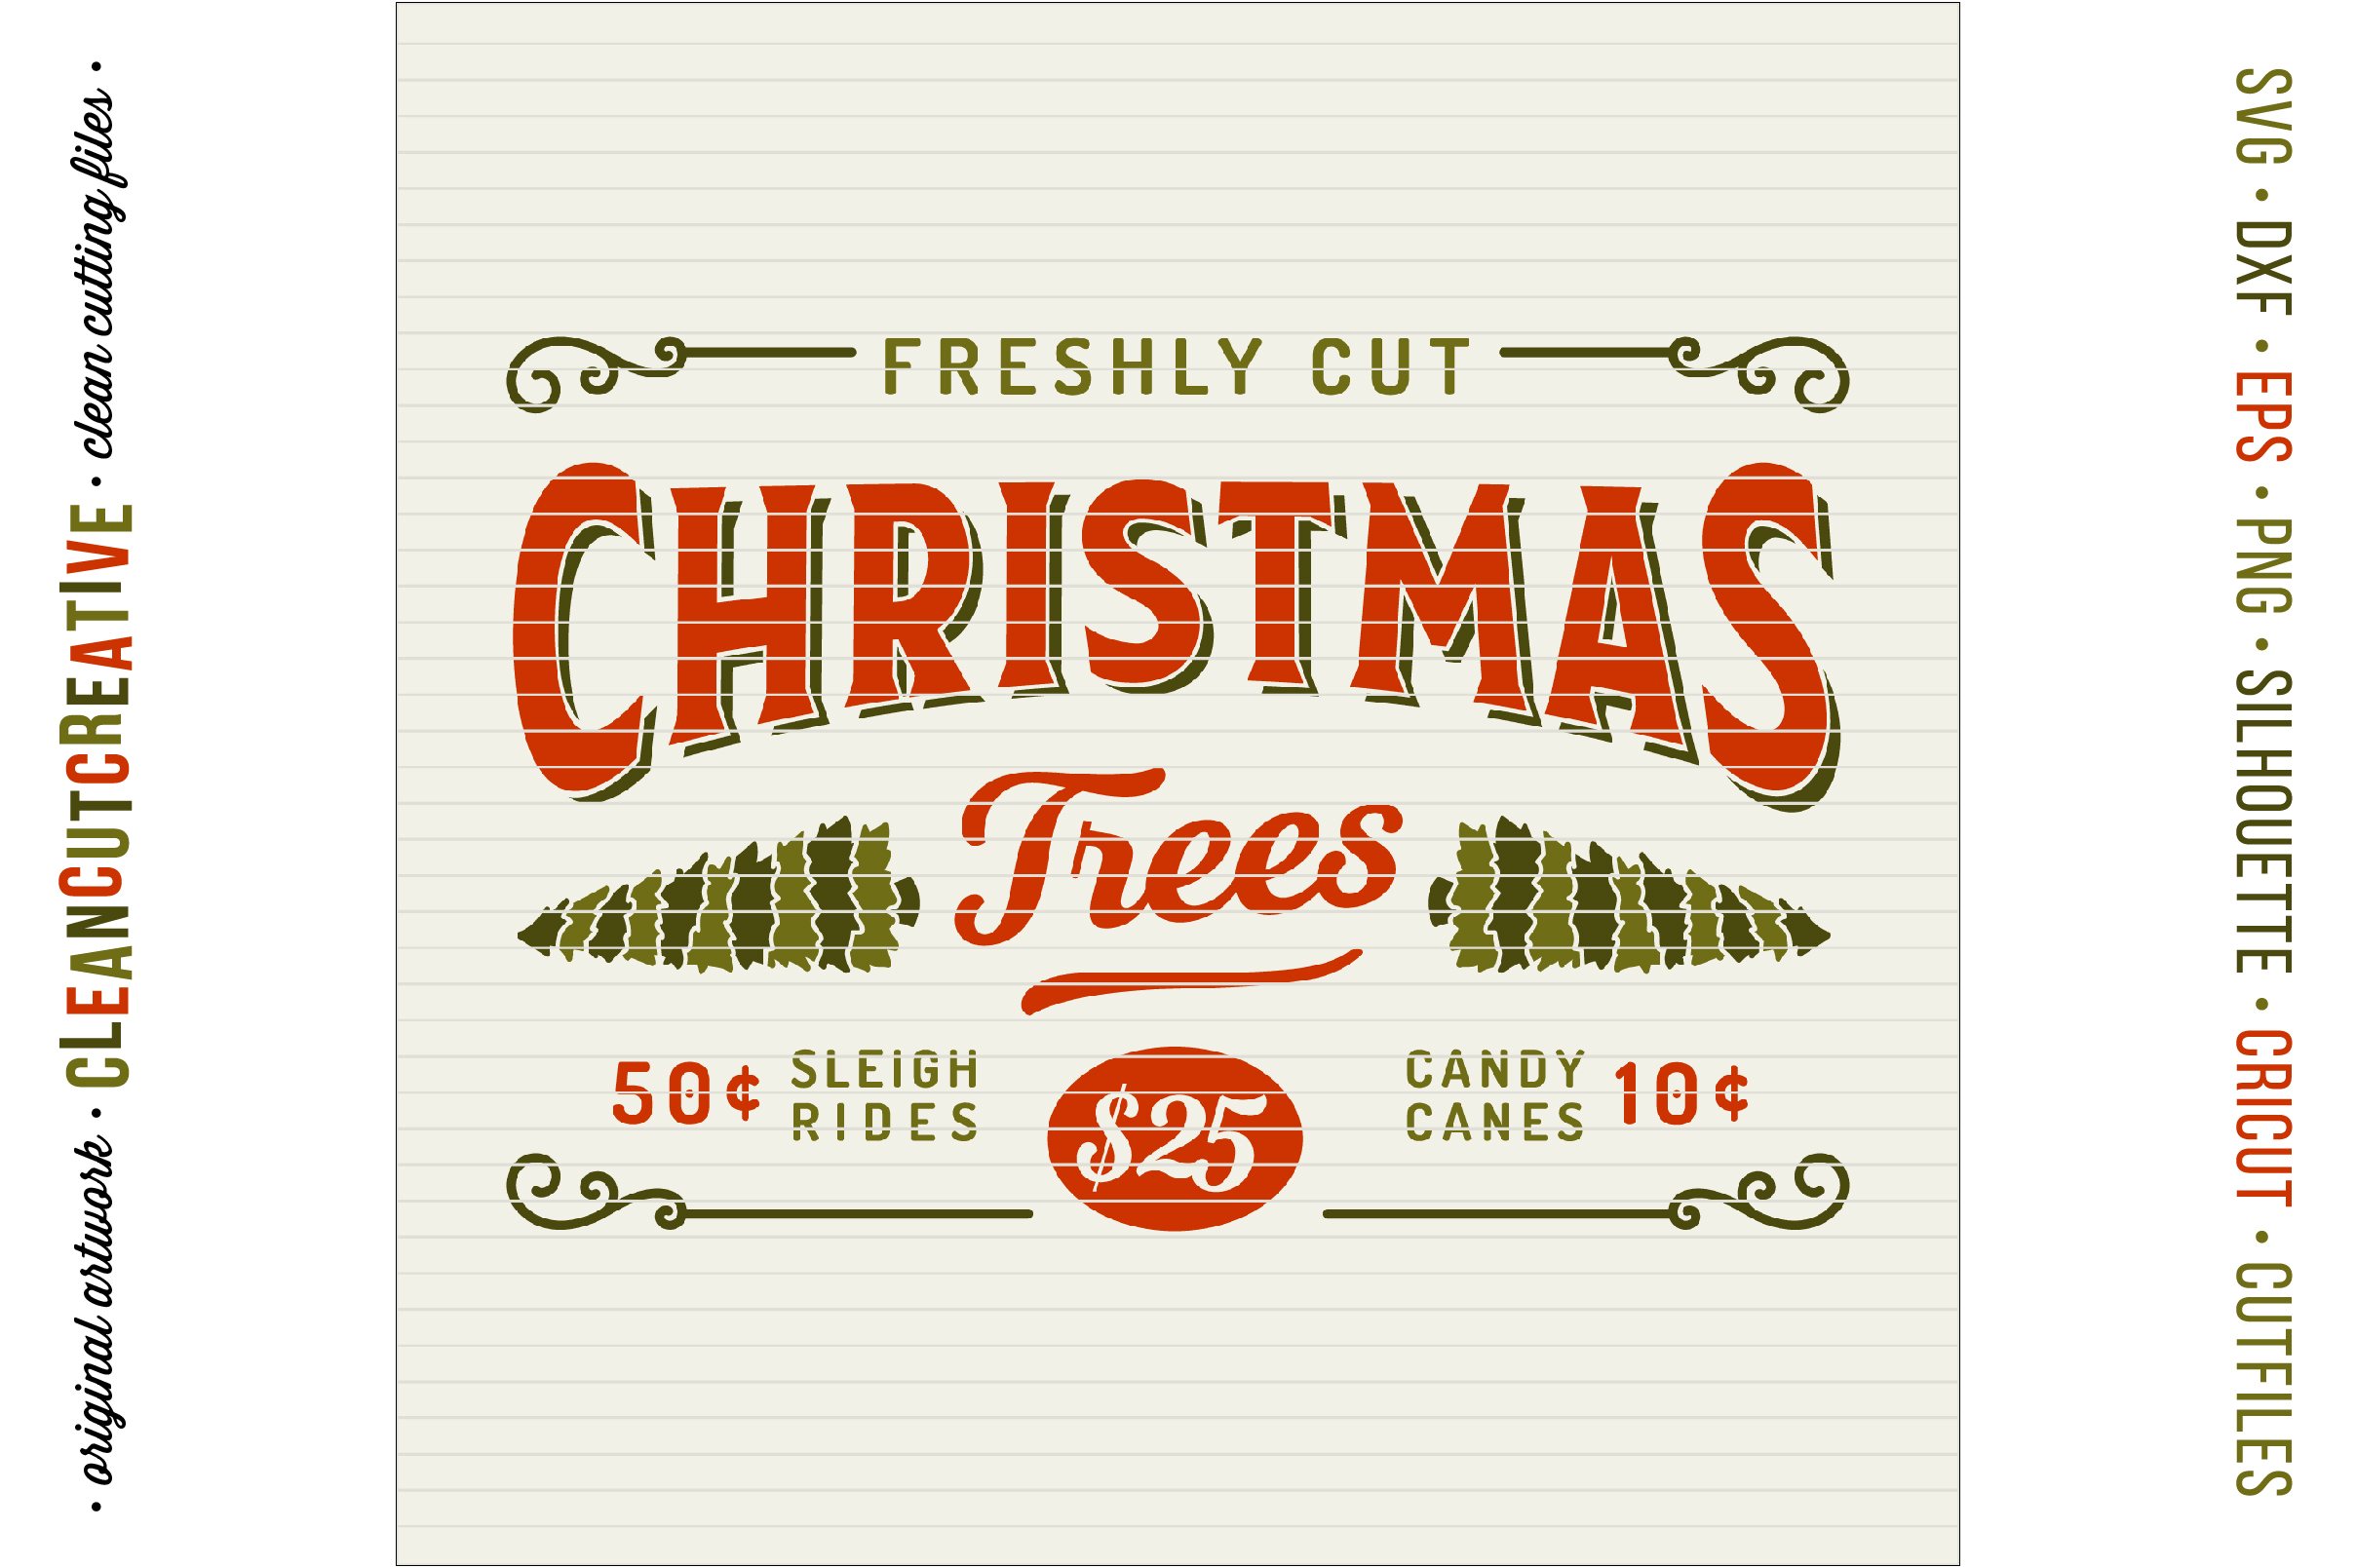 Freshly Cut Christmas Trees! - Rustic Farm Wood Sign - SVG DXF EPS PNG - Cricut & Silhouette - clean cutting files example image 3